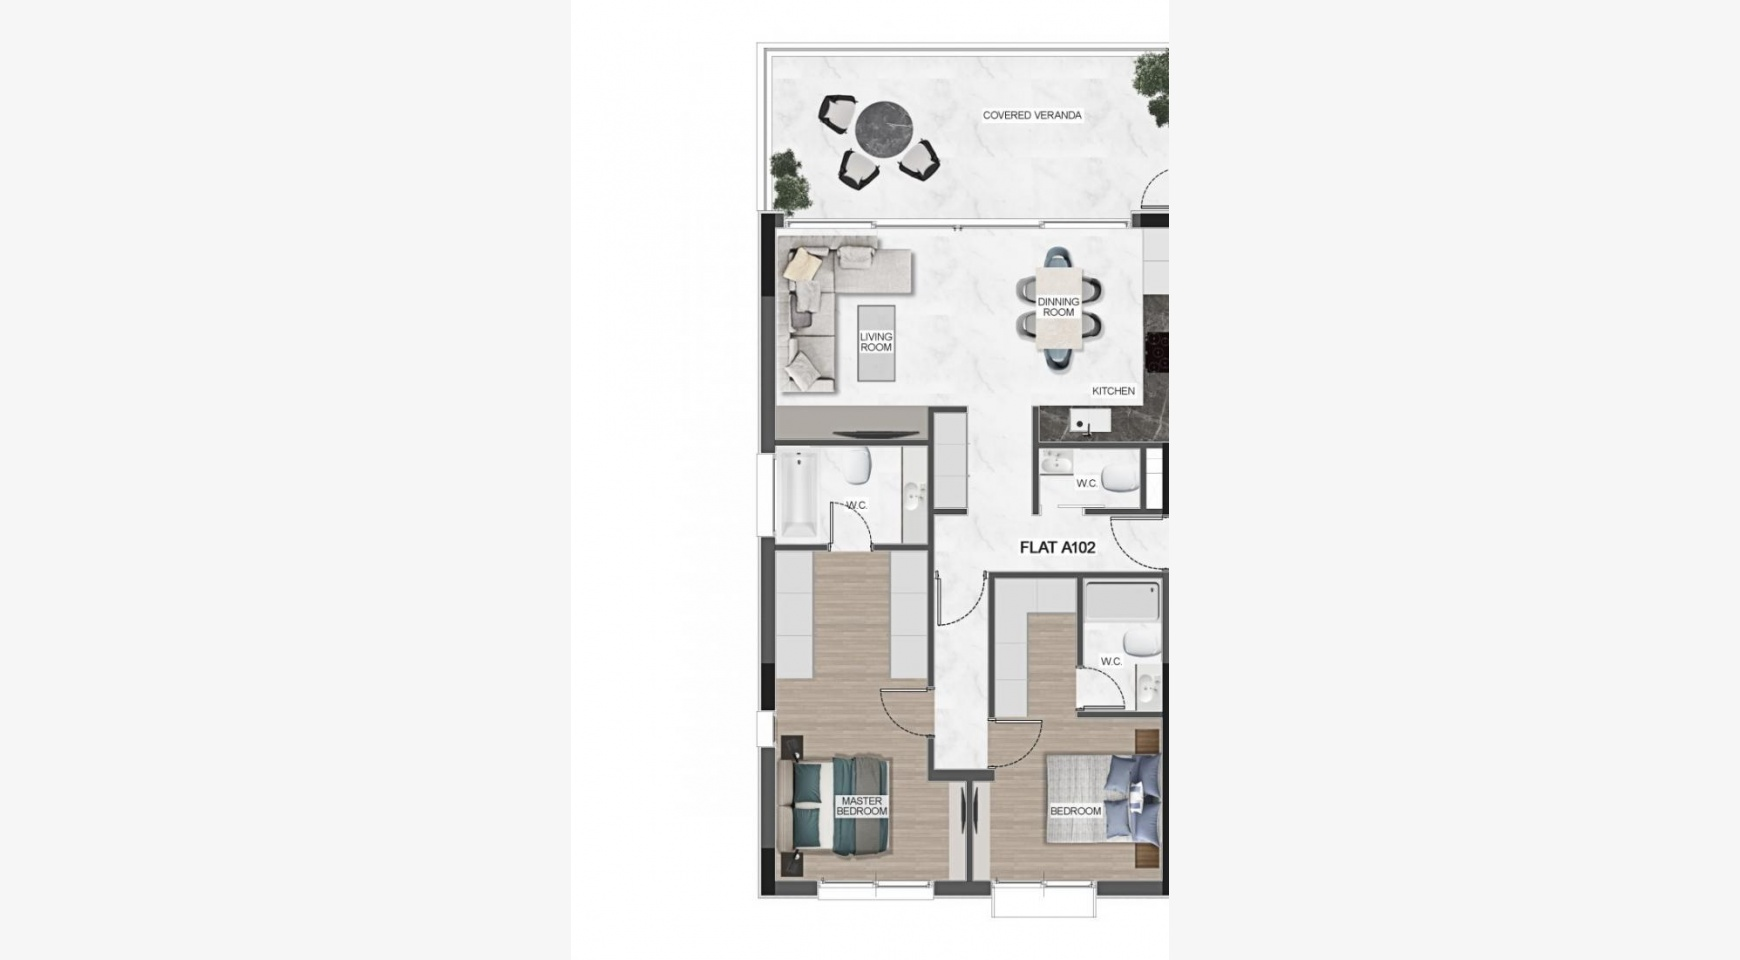 Urban City Residences, Block B. New Spacious 3 Bedroom Apartment 501 in the City Centre - 42